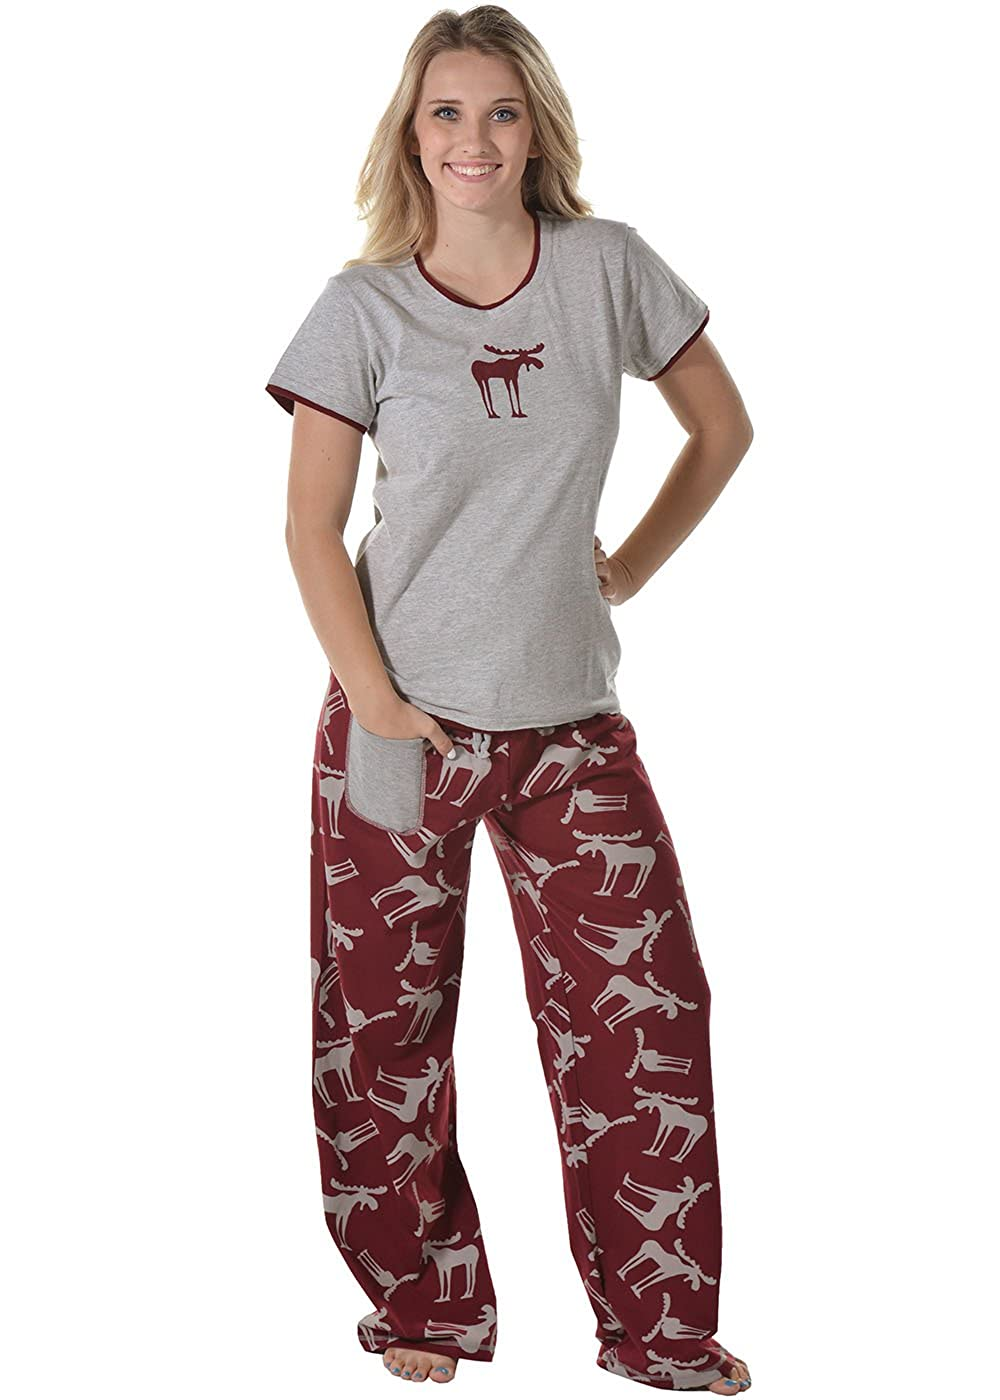 Lazy One Mujer Toadally Tired Fitted Pijama Camesita XS: Amazon.es: Ropa y accesorios